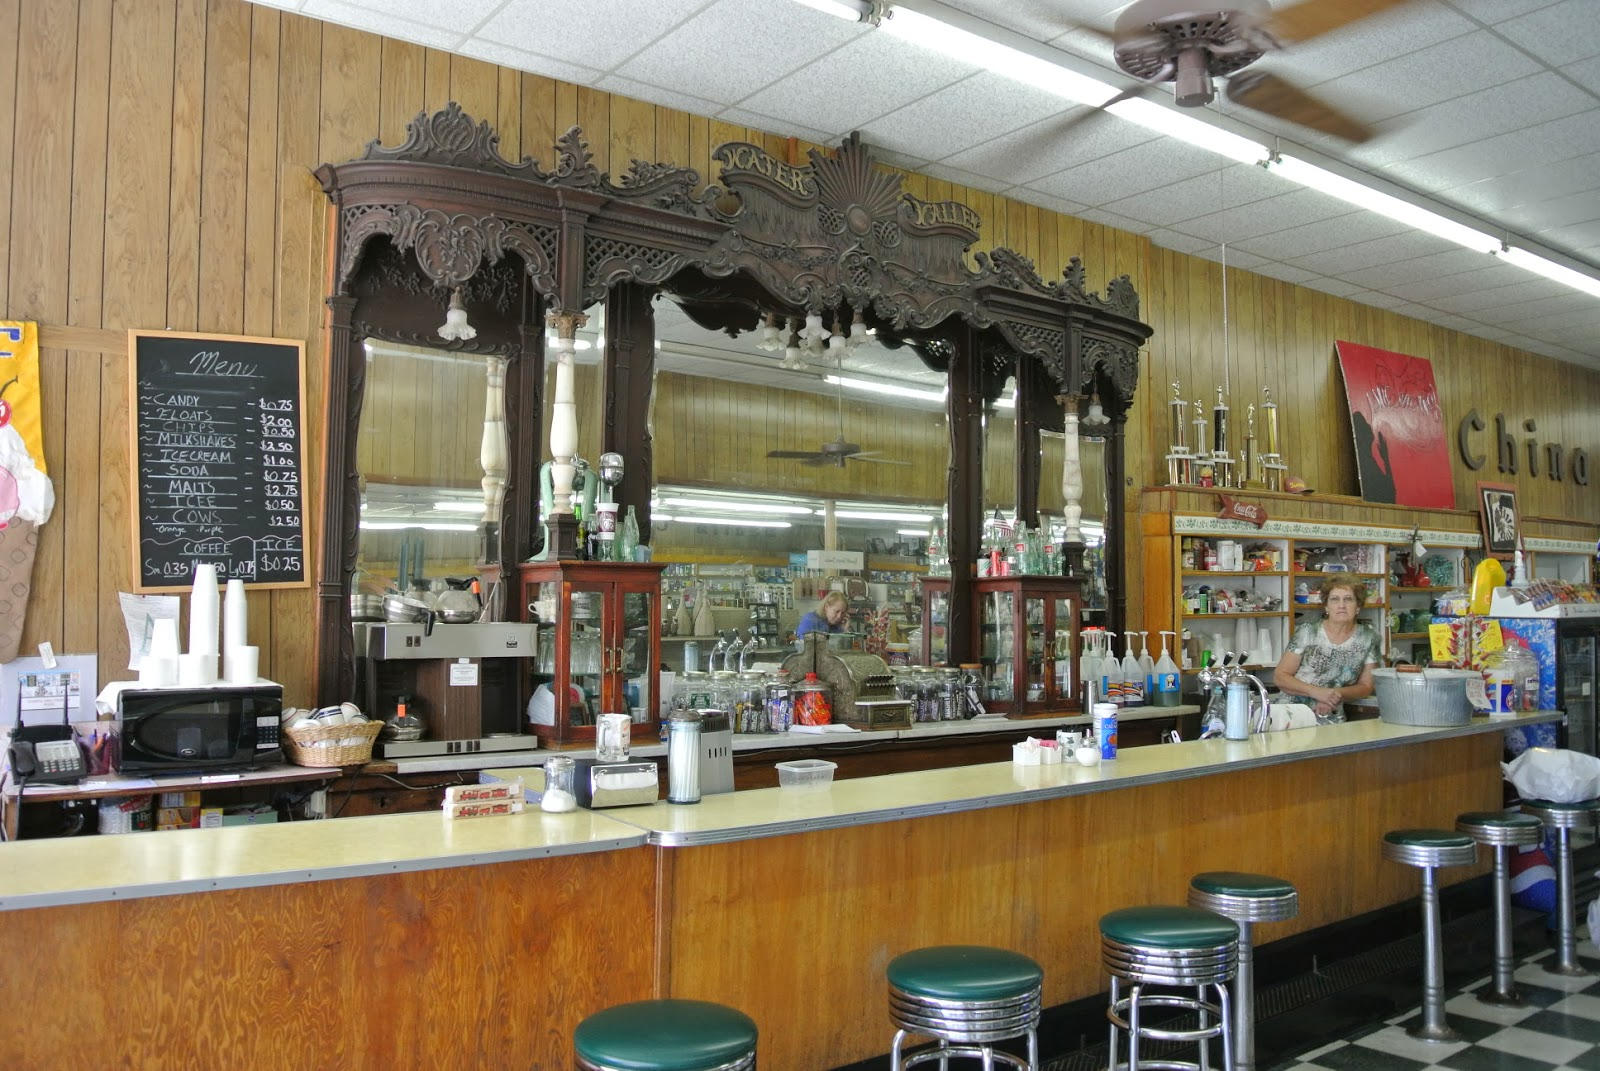 Mississippi tallahatchie county tippo - Turnage Drugs Lunch Counter Soda Fountain